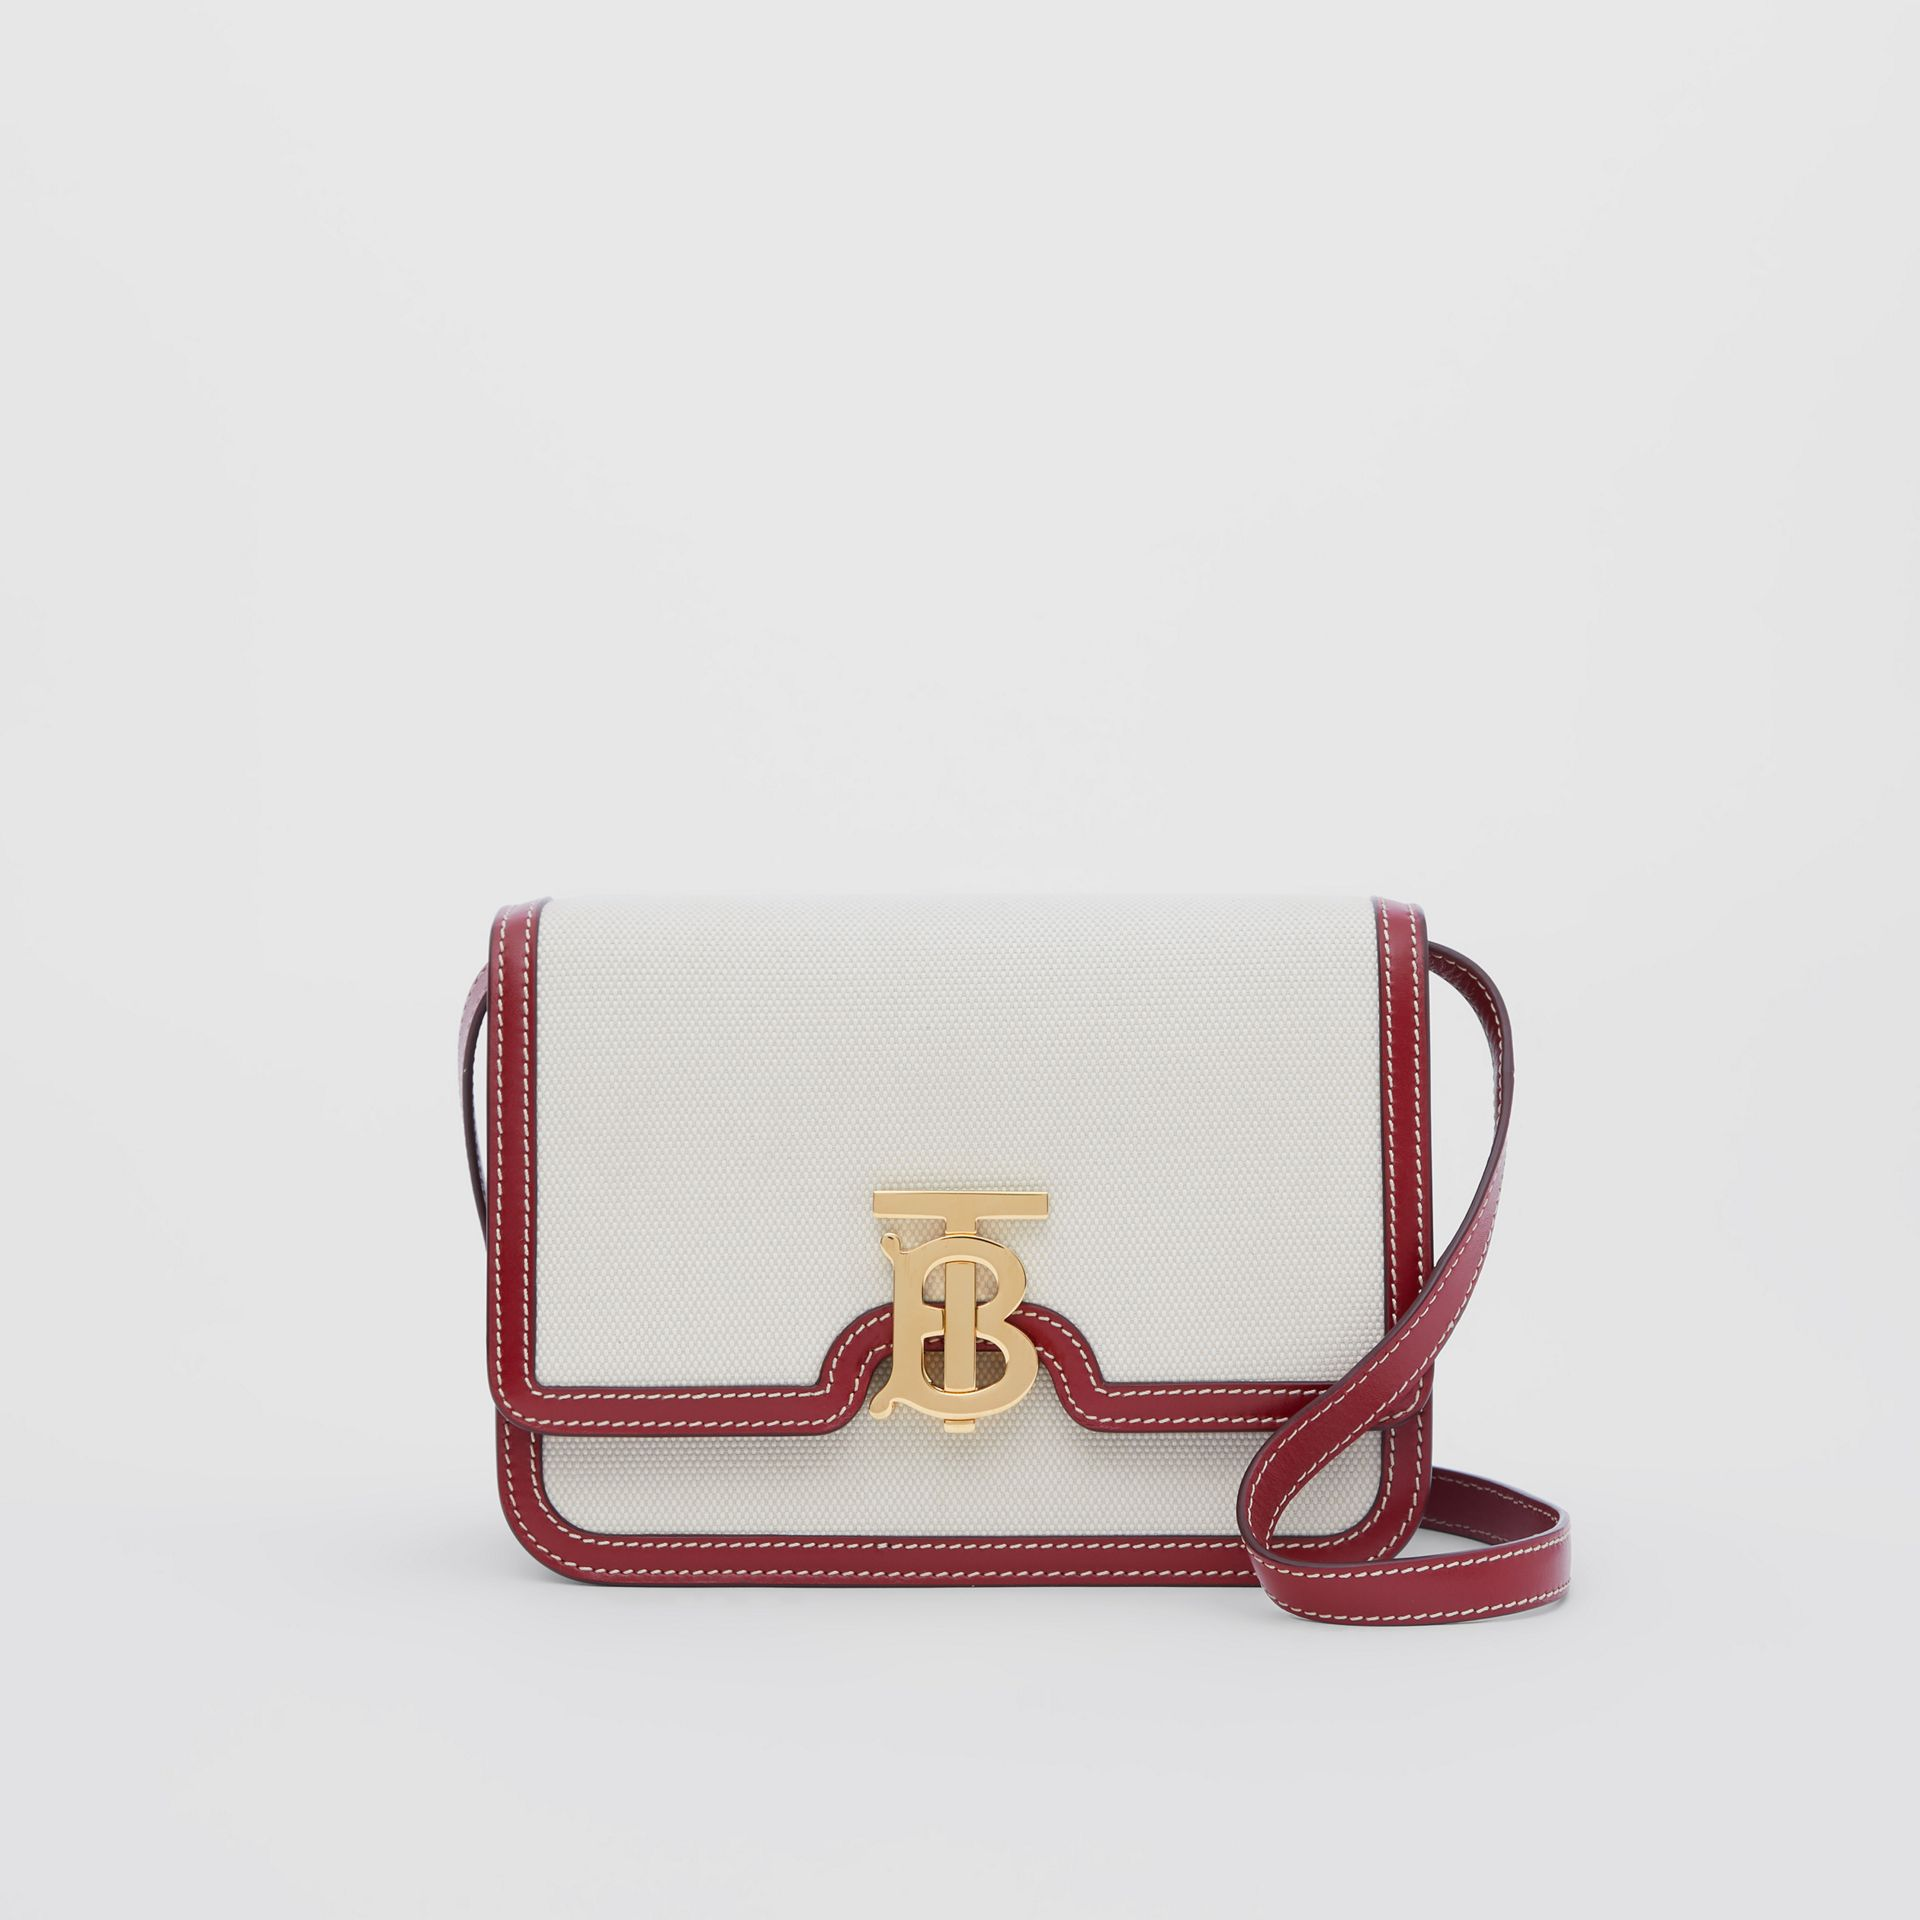 Small Two-tone Canvas and Leather TB Bag in Natural/dark Carmine - Women | Burberry Hong Kong S.A.R - gallery image 0